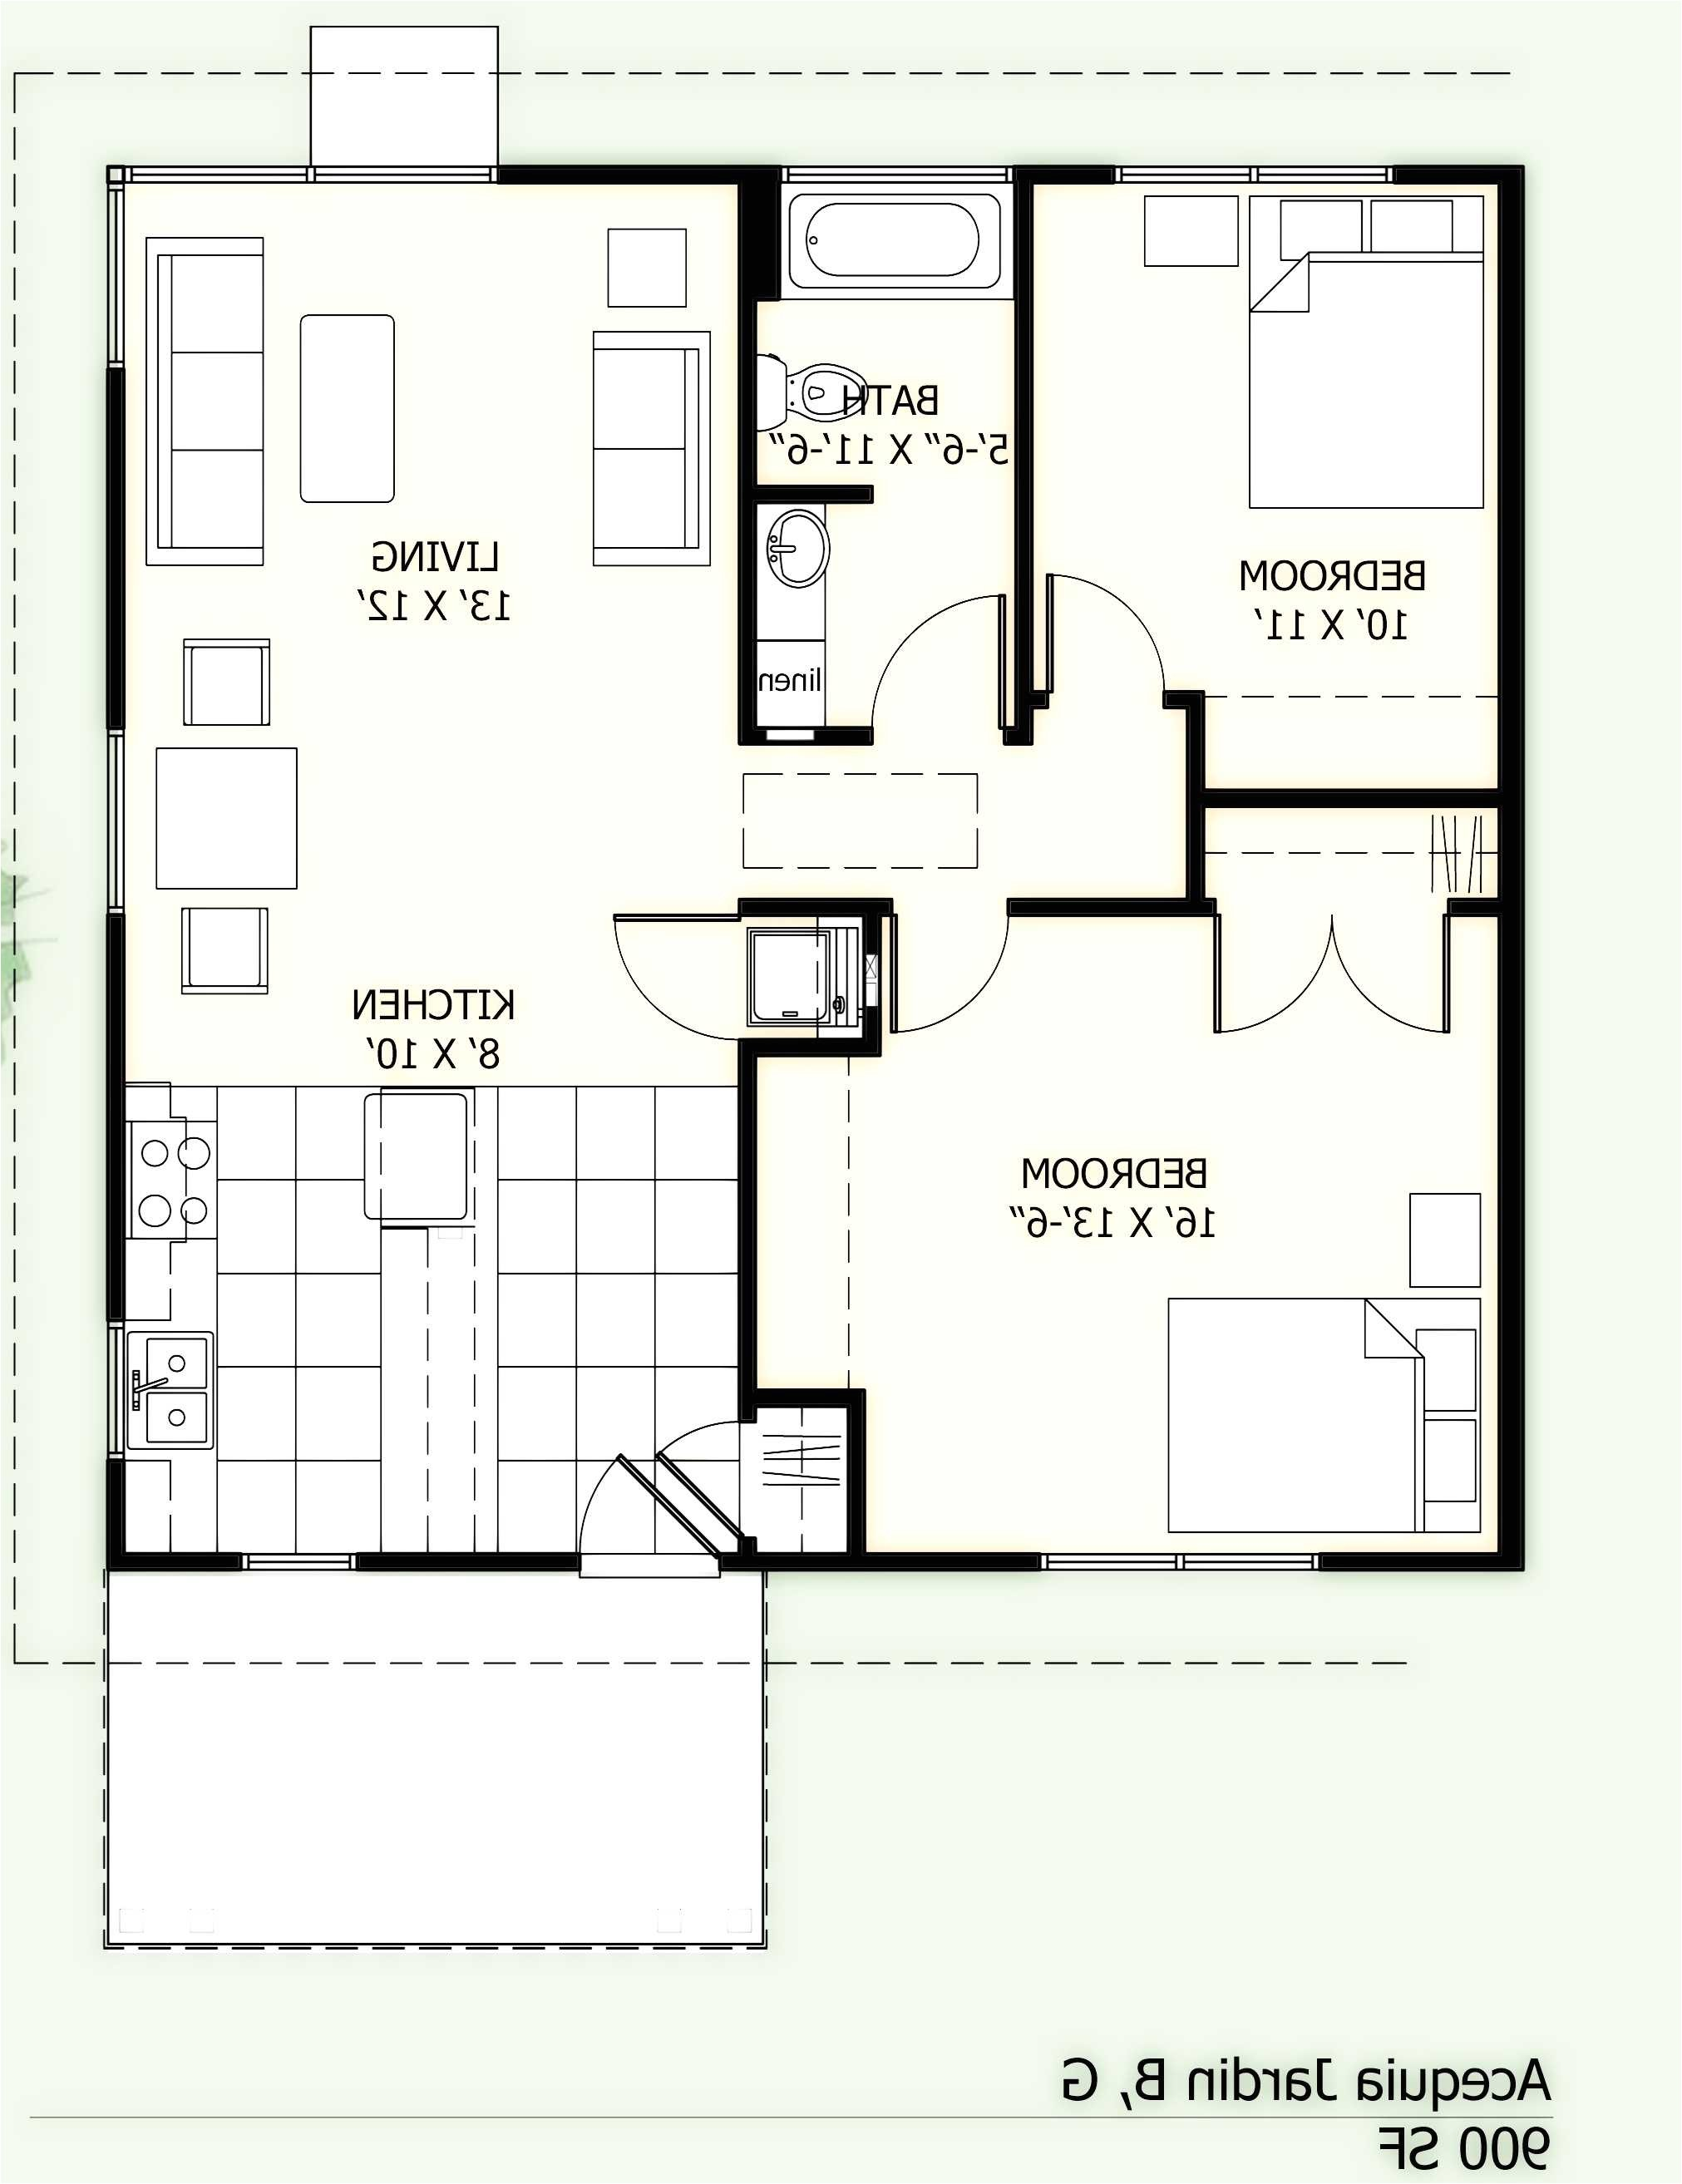 1400 sq ft house plans with loft